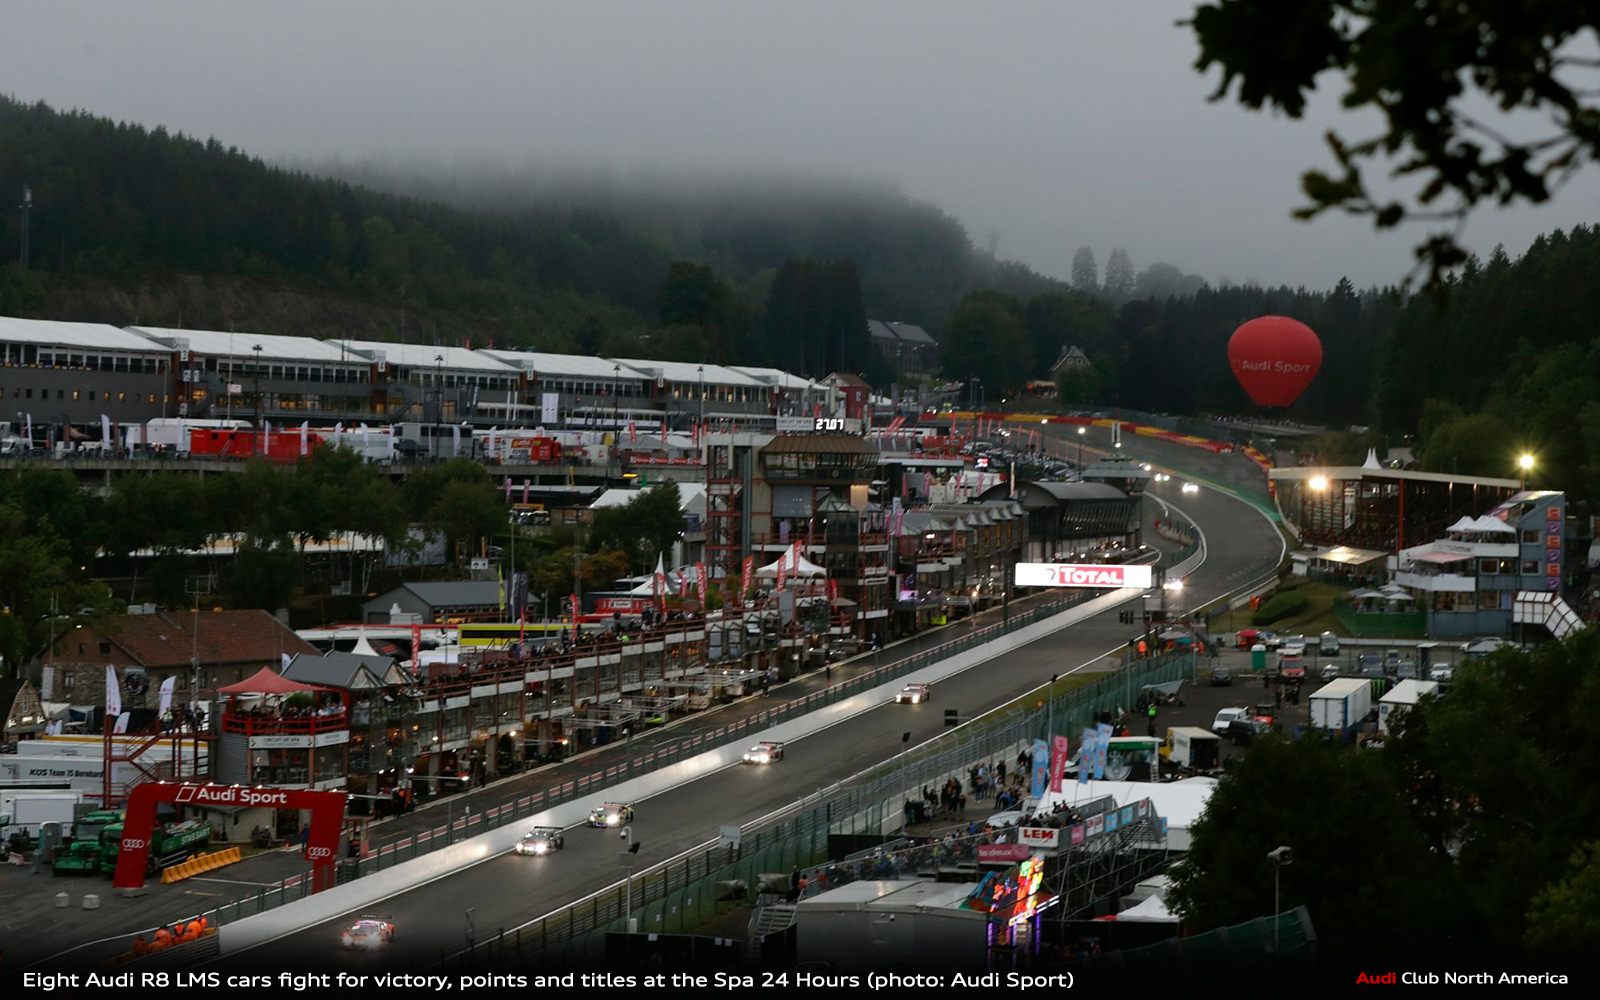 Eight Audi R8 LMS Cars Fight for Victory, Points and Titles at the Spa 24 Hours